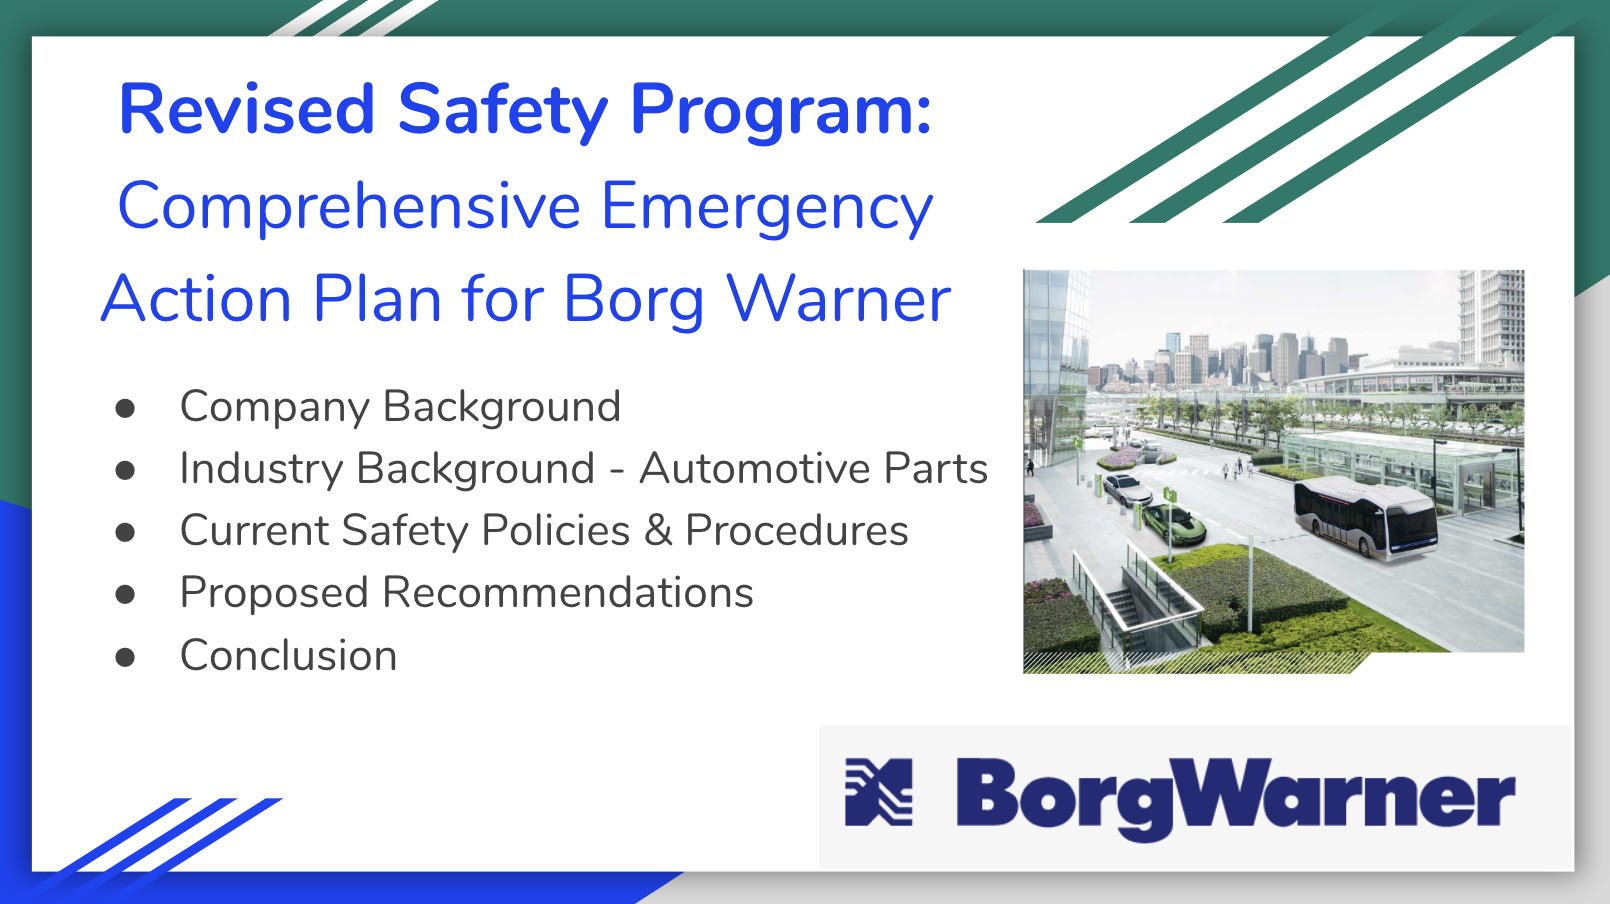 Revised Safety Program for BorgWarner